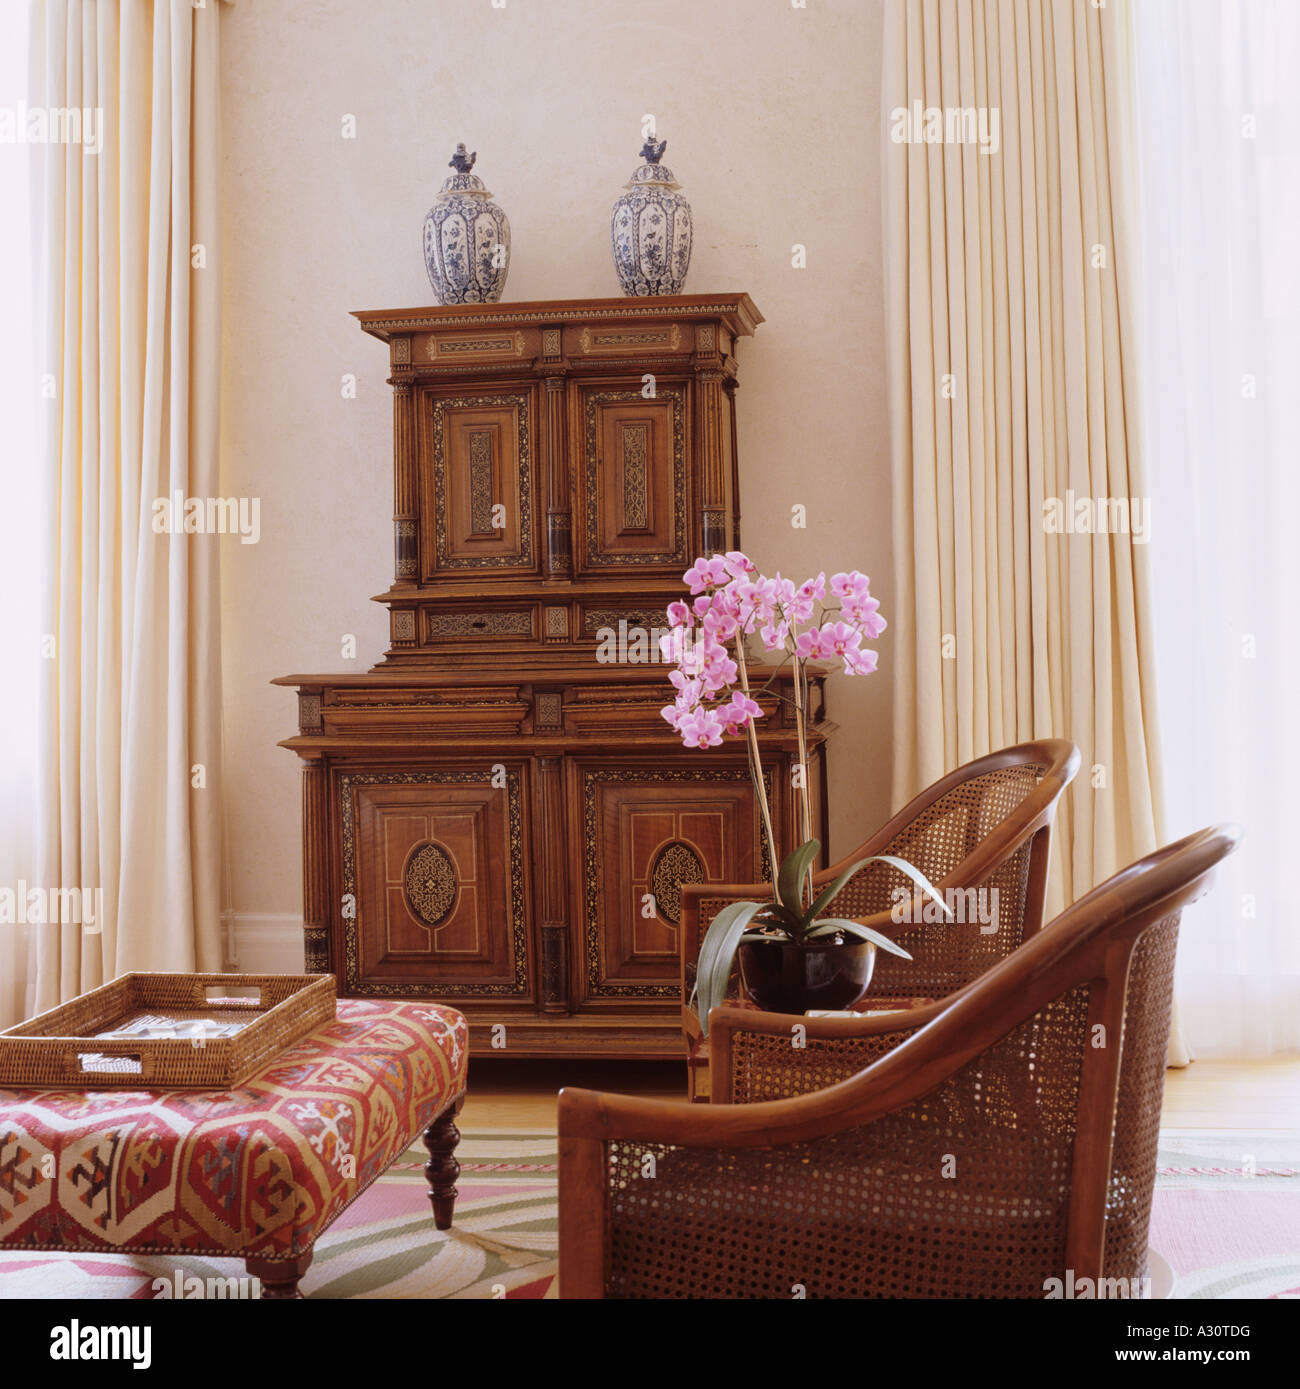 Antique sideboard in drawing room with wicker armchairs and a kilim covered ottoman - Stock Image